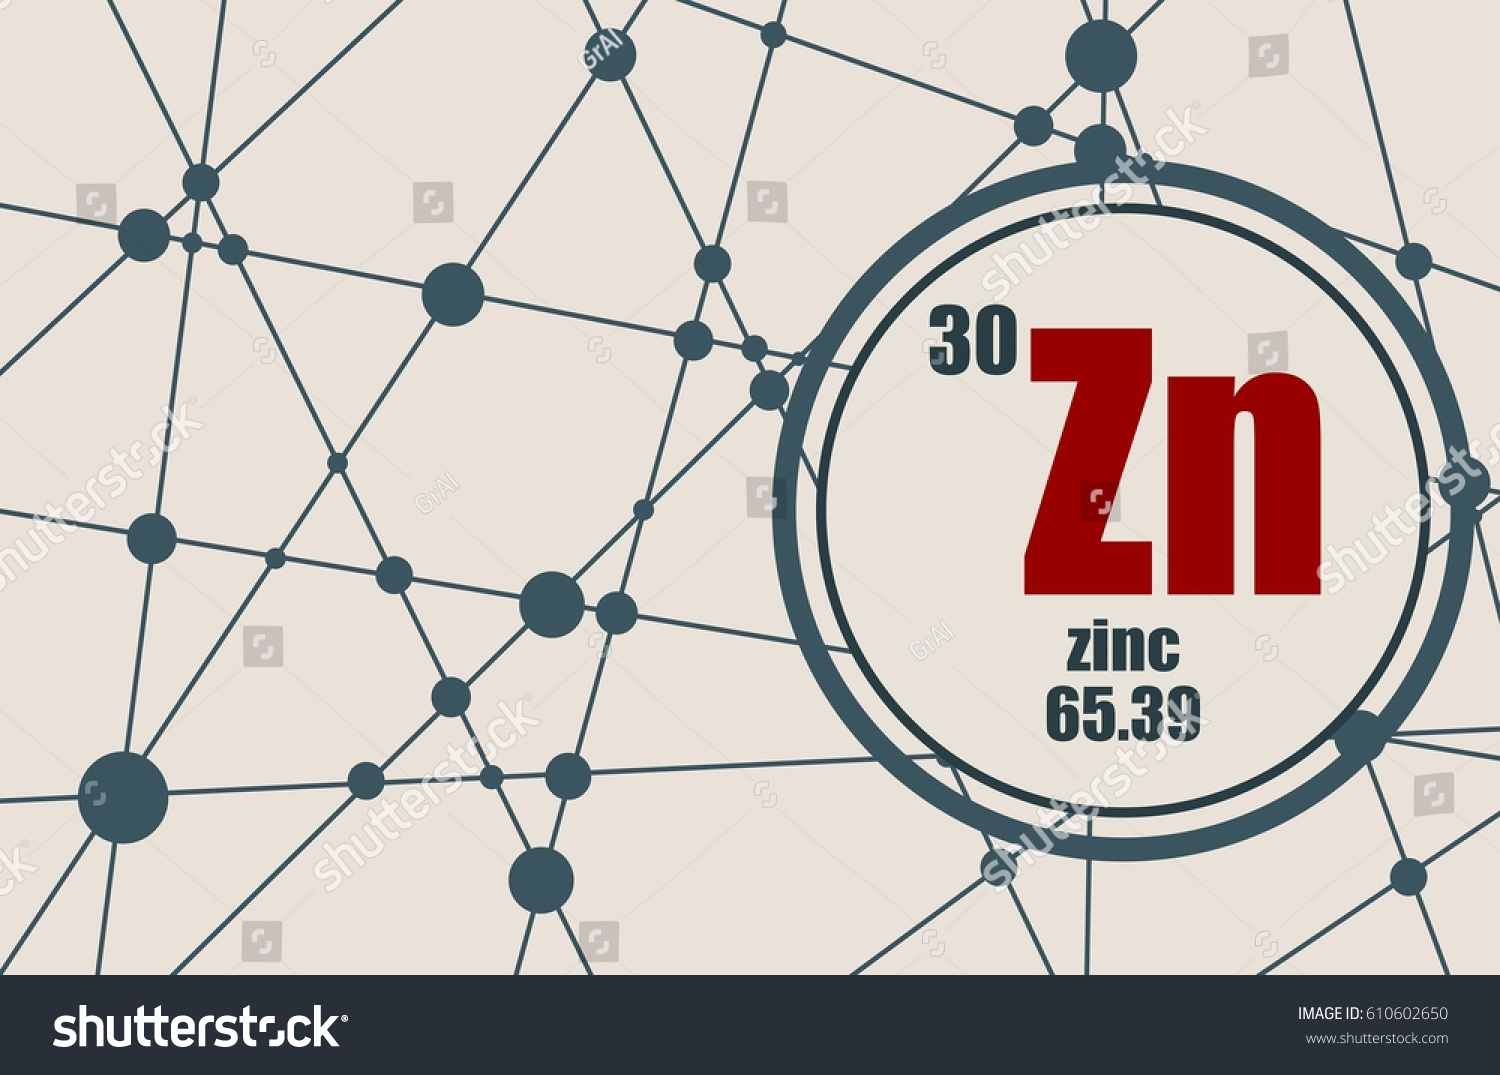 Zinc chemical element sign atomic number stock vector 610602650 sign with atomic number and atomic weight chemical element of periodic gamestrikefo Choice Image